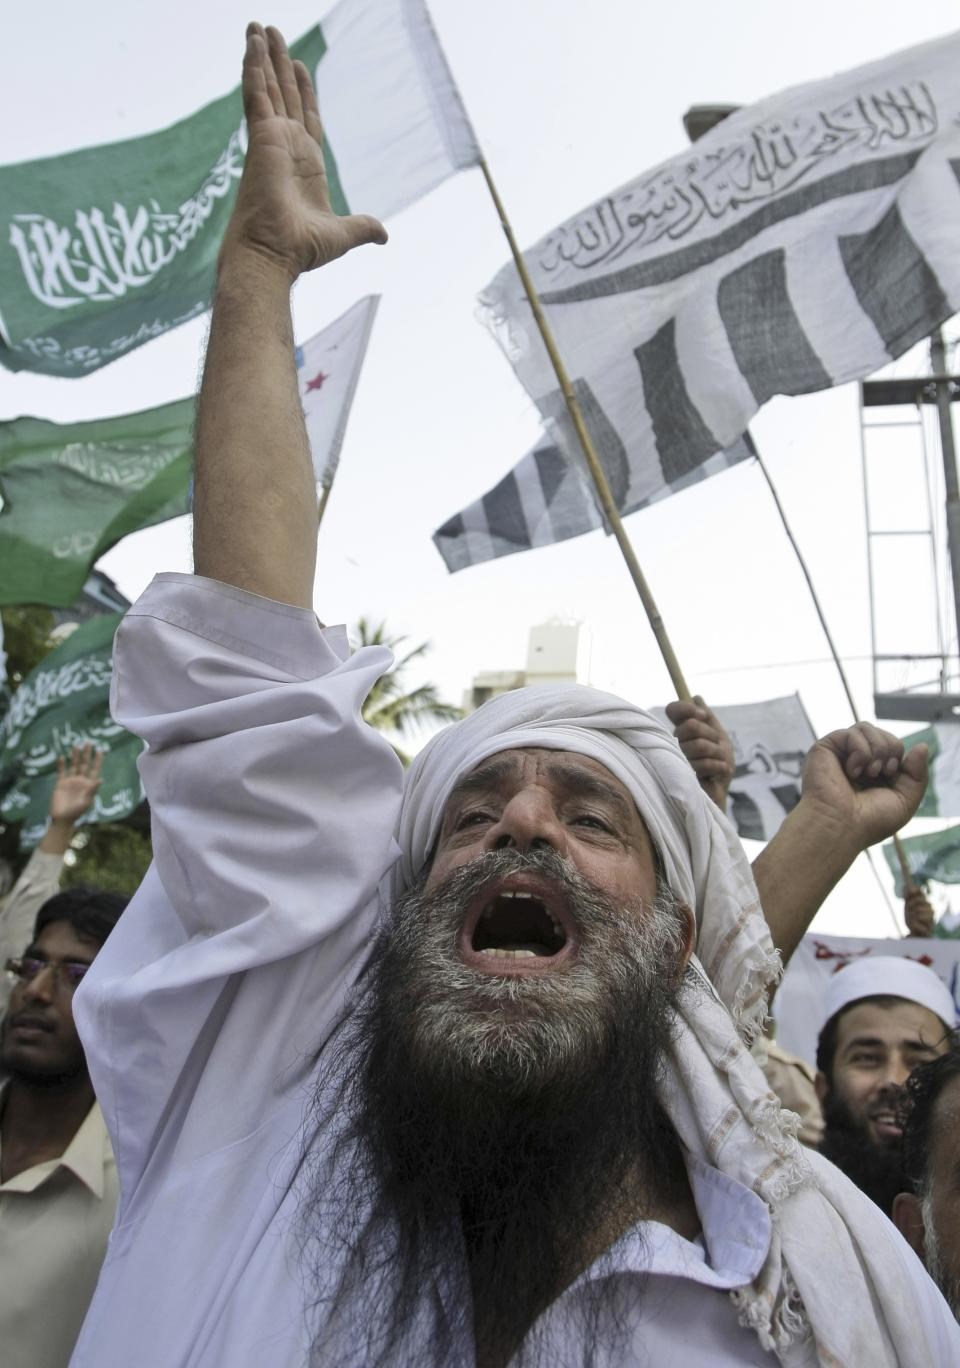 A Pakistani man, chants slogans along with other protestors, during a demonstration that is part of widespread anger across the Muslim world about a film ridiculing Islam's Prophet Muhammad, in Karachi, Pakistan, Sunday, Sept. 23, 2012. (AP Photo/Fareed Khan)